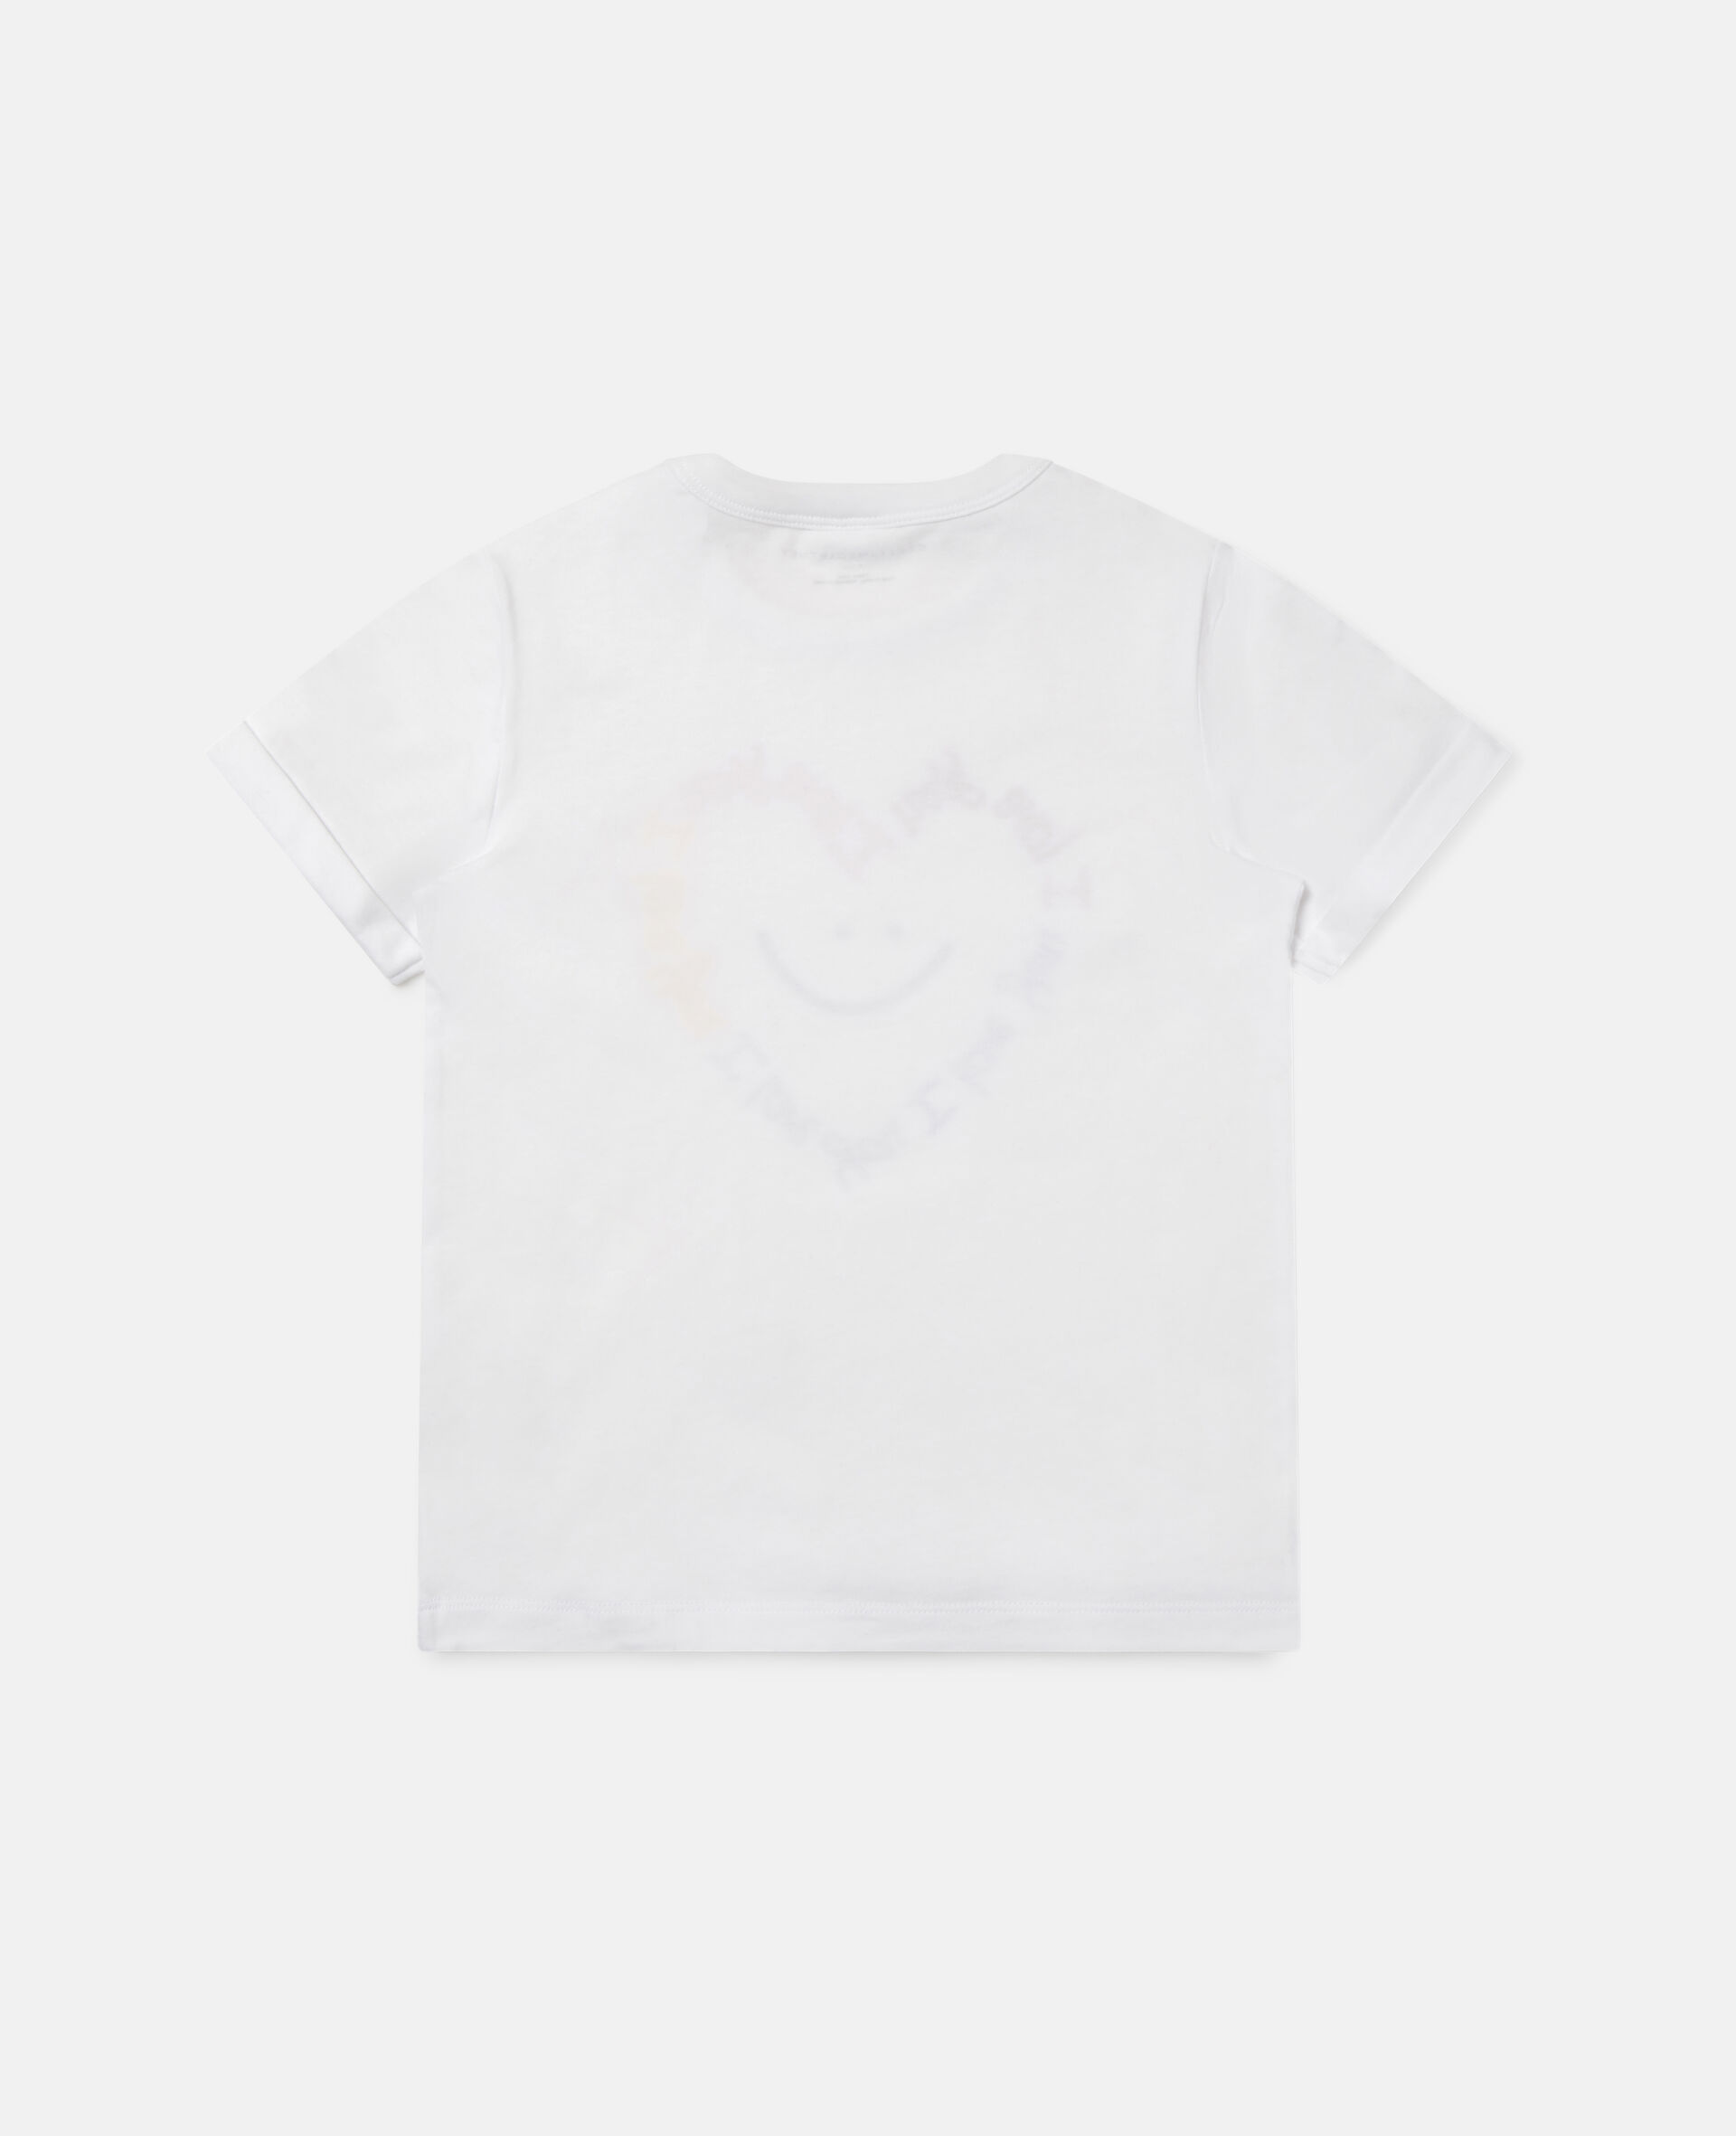 Smile Heart Cotton T-shirt -White-large image number 3